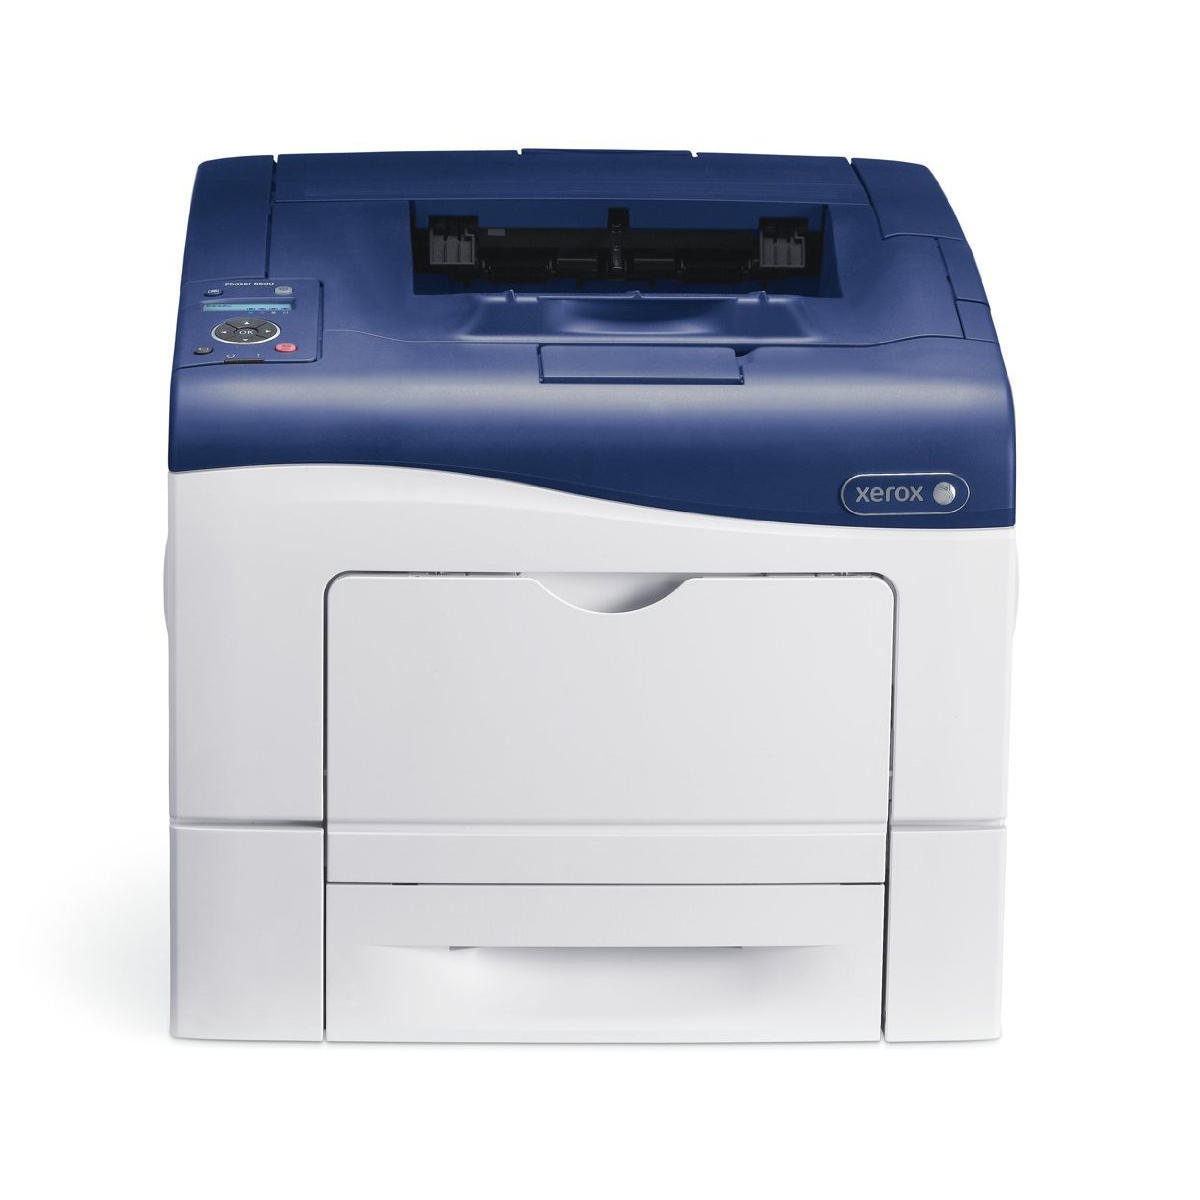 Xerox Phaser 6600/N Single Function Colour Laser Printer (Phaser 6600)